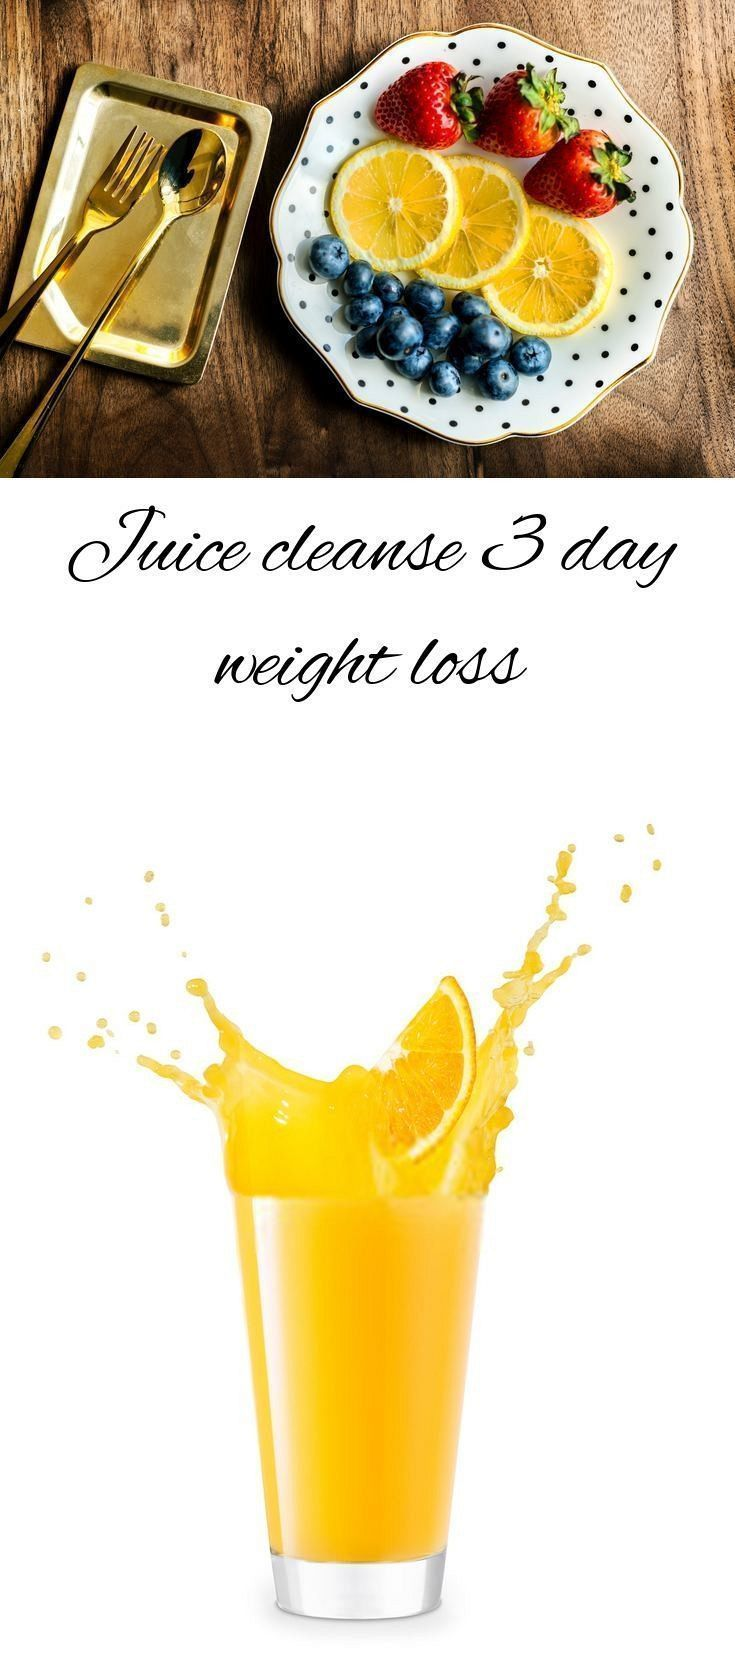 Juice cleaning 3 days weight loss. Detox diet seem